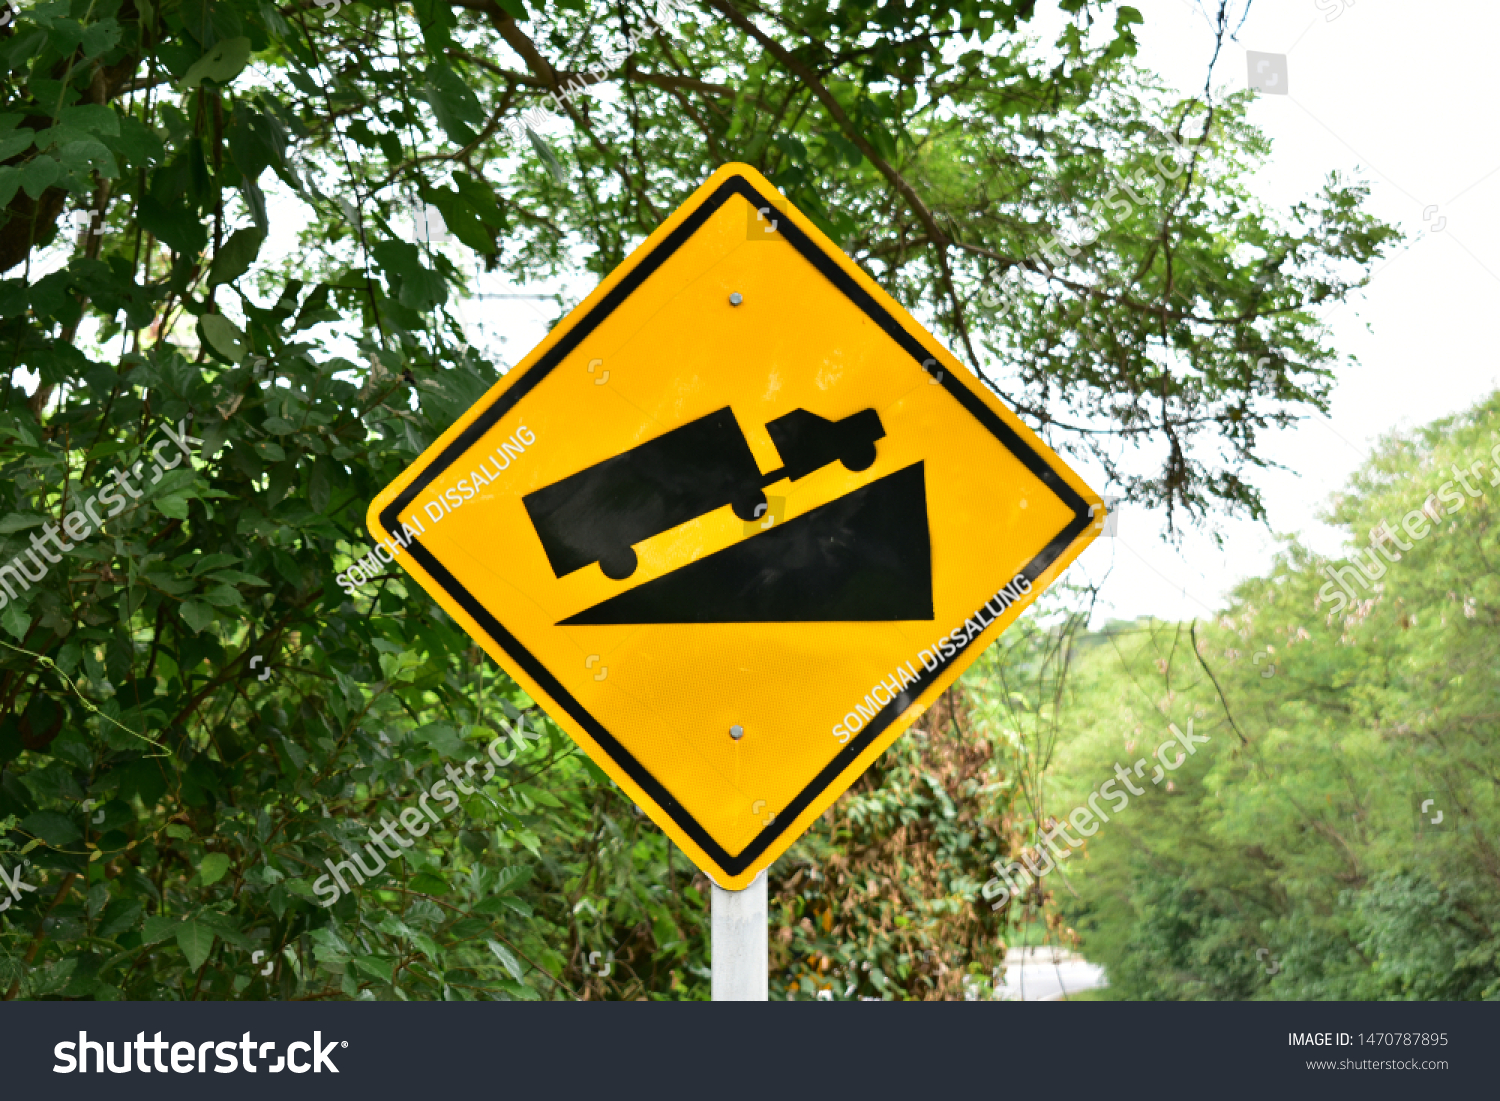 Steep Hill Ascent, Traffic sign from Thailand country